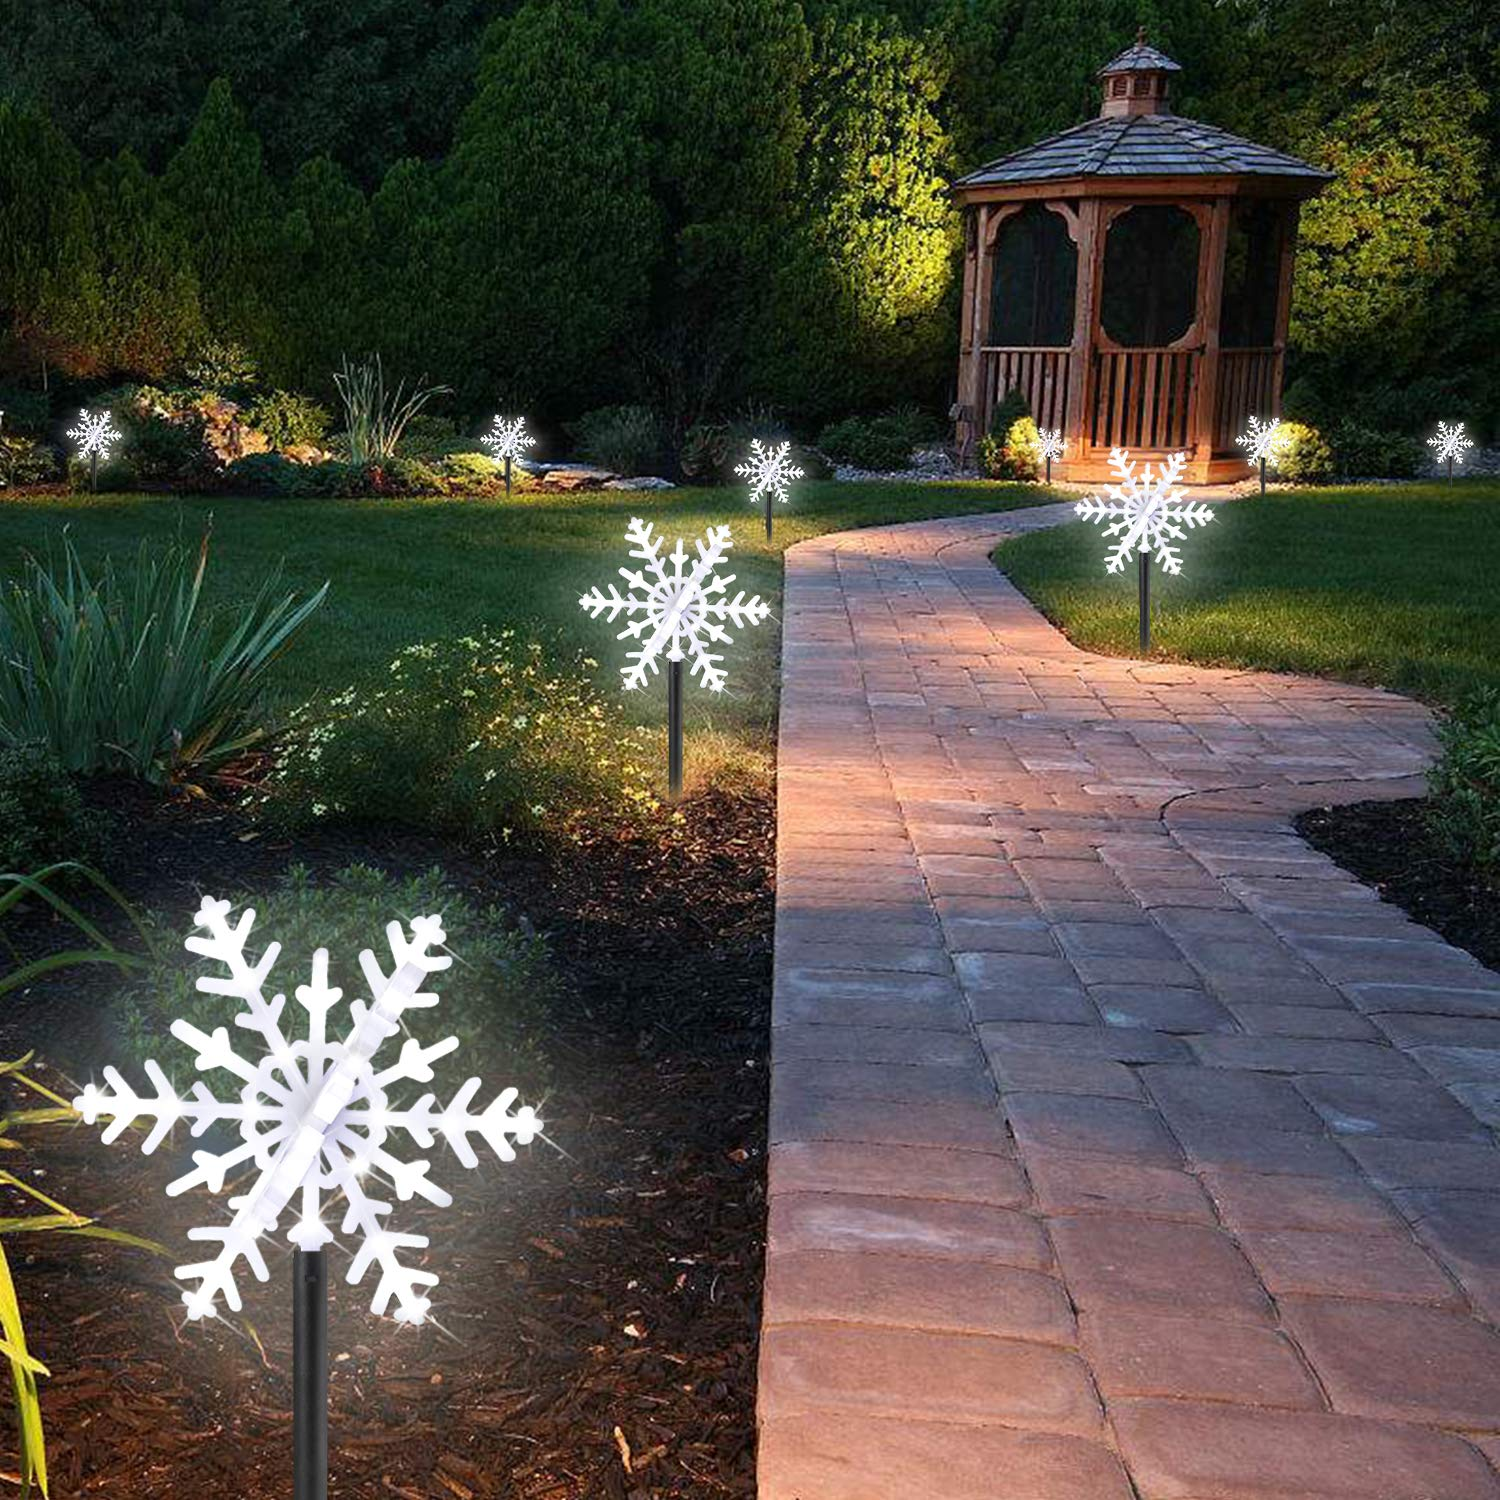 Led Pathway Lights Outdoor Landscape Light Ip65 Lighting On Wiring Diagram For Garden Waterproof Winter Snowflake Lamp Christmas Fairy 3d Snow Decorations